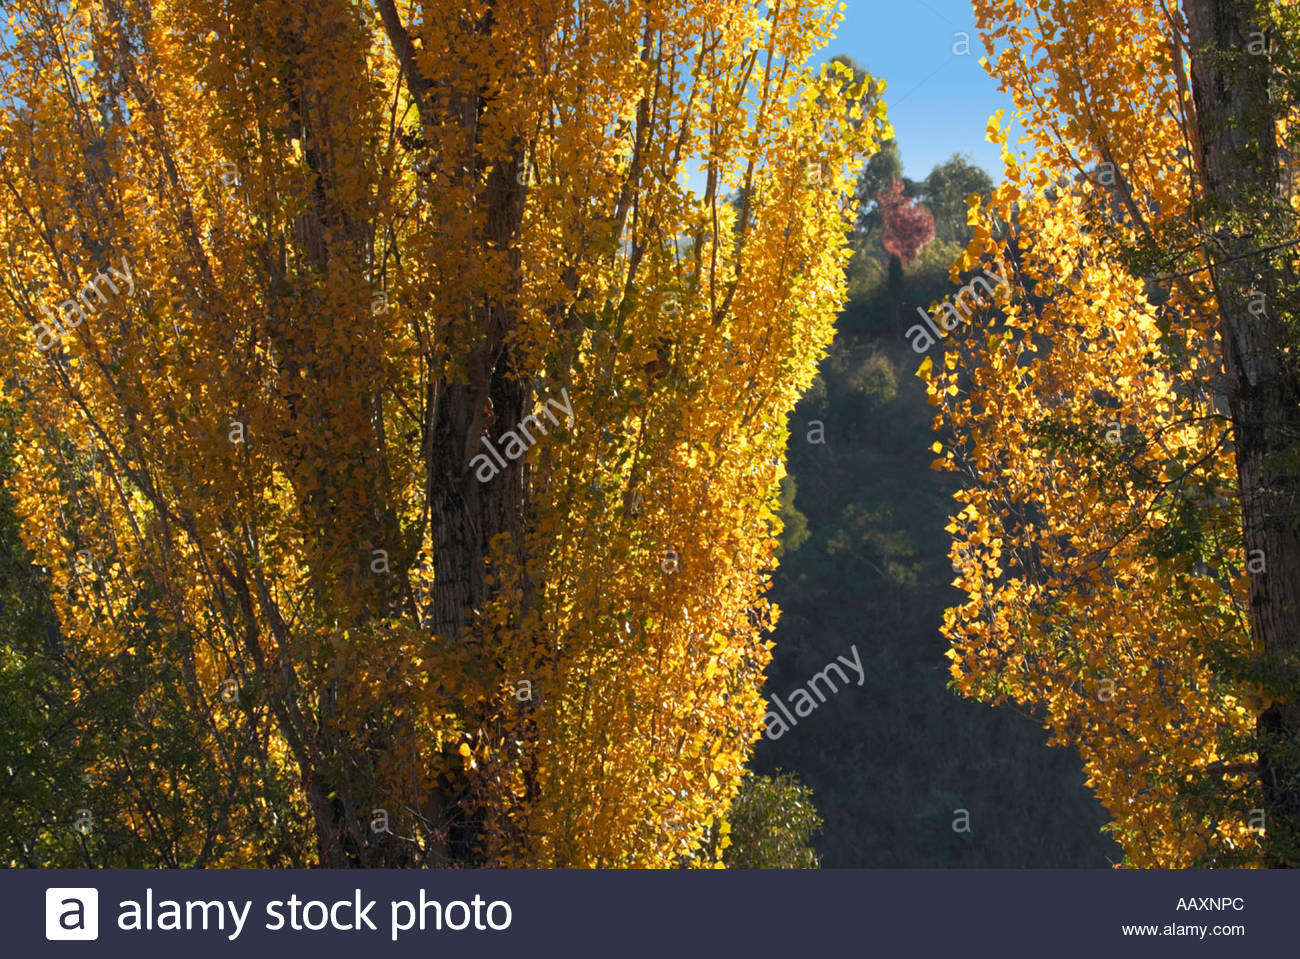 The golden colours of poplars in autumn at Brindabella Station in the High Country of New South Wales Australia - Stock Image